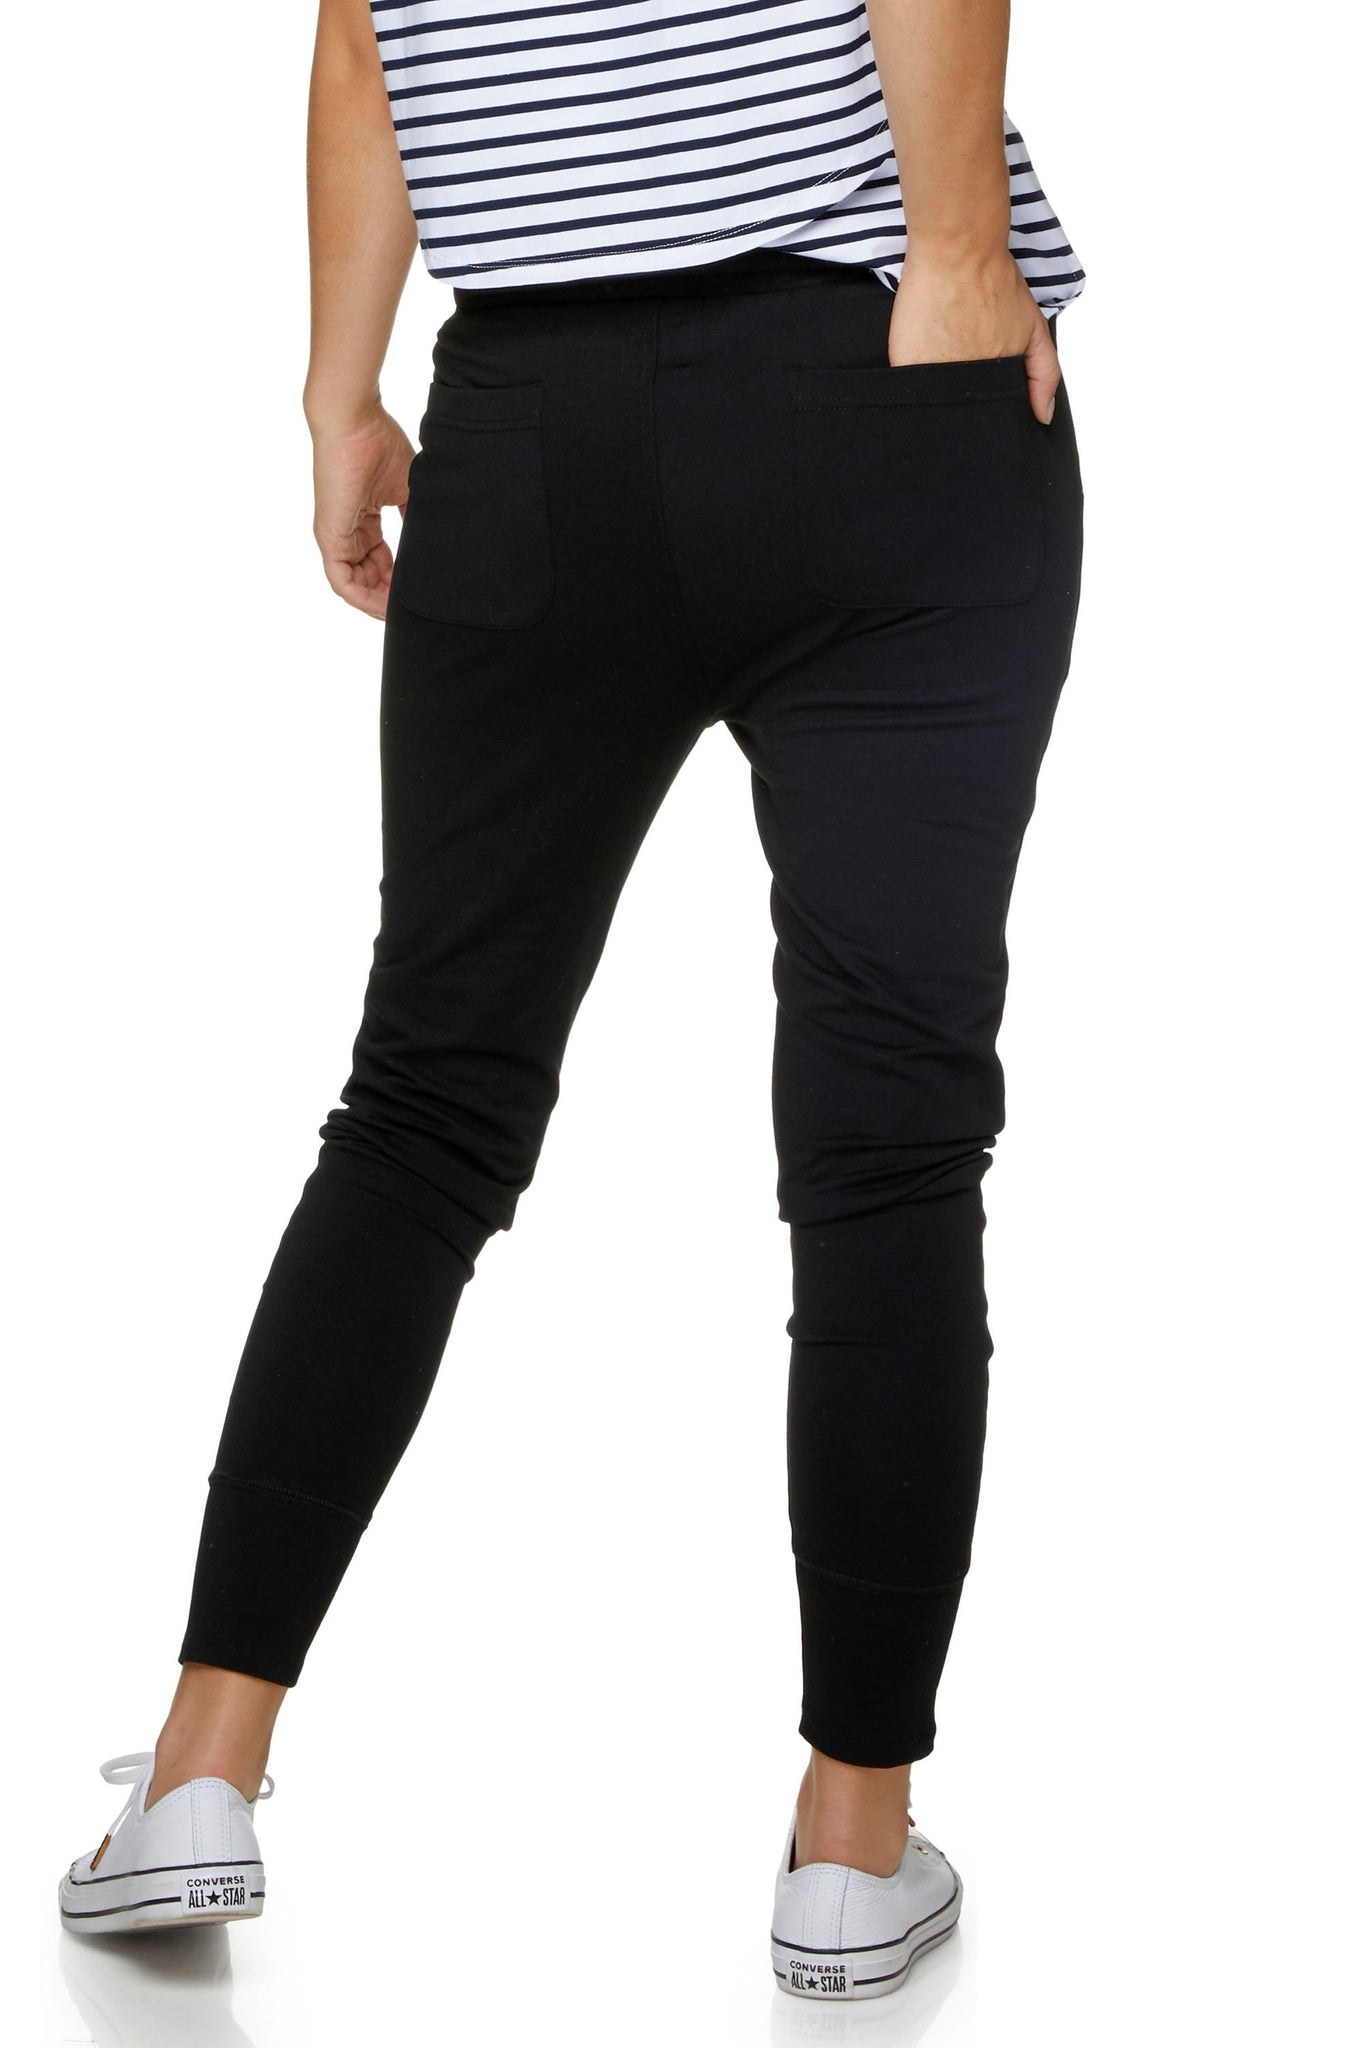 Black Maternity Pants / Jogger 3